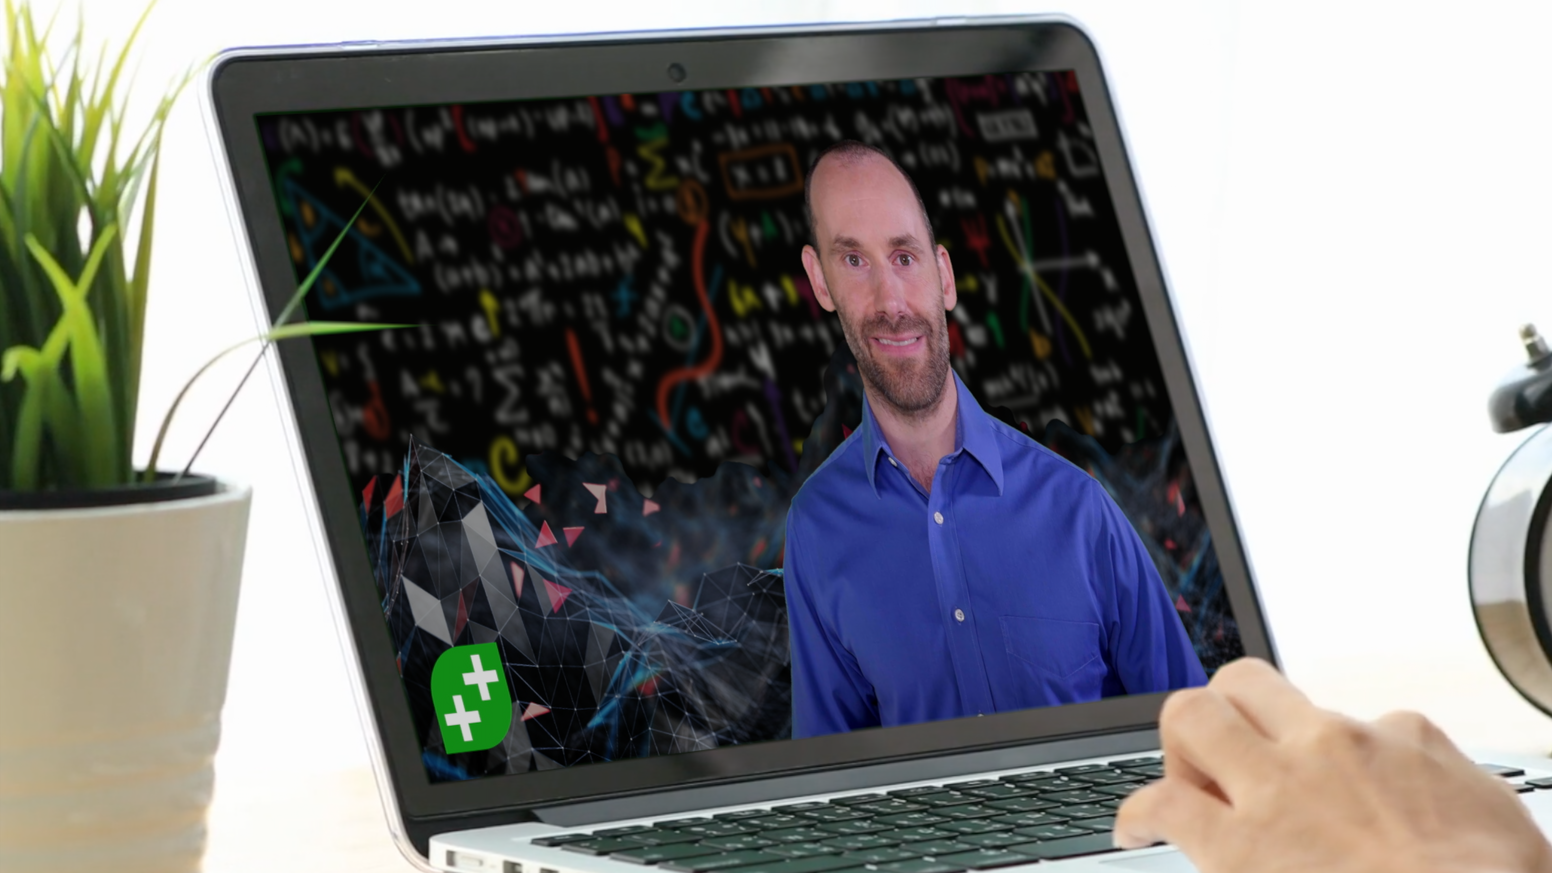 The fastest way to get smarter at math! Learn math for video game design & coding through solving fun video game problems with this online course. Join more than 10,000 happy students now.